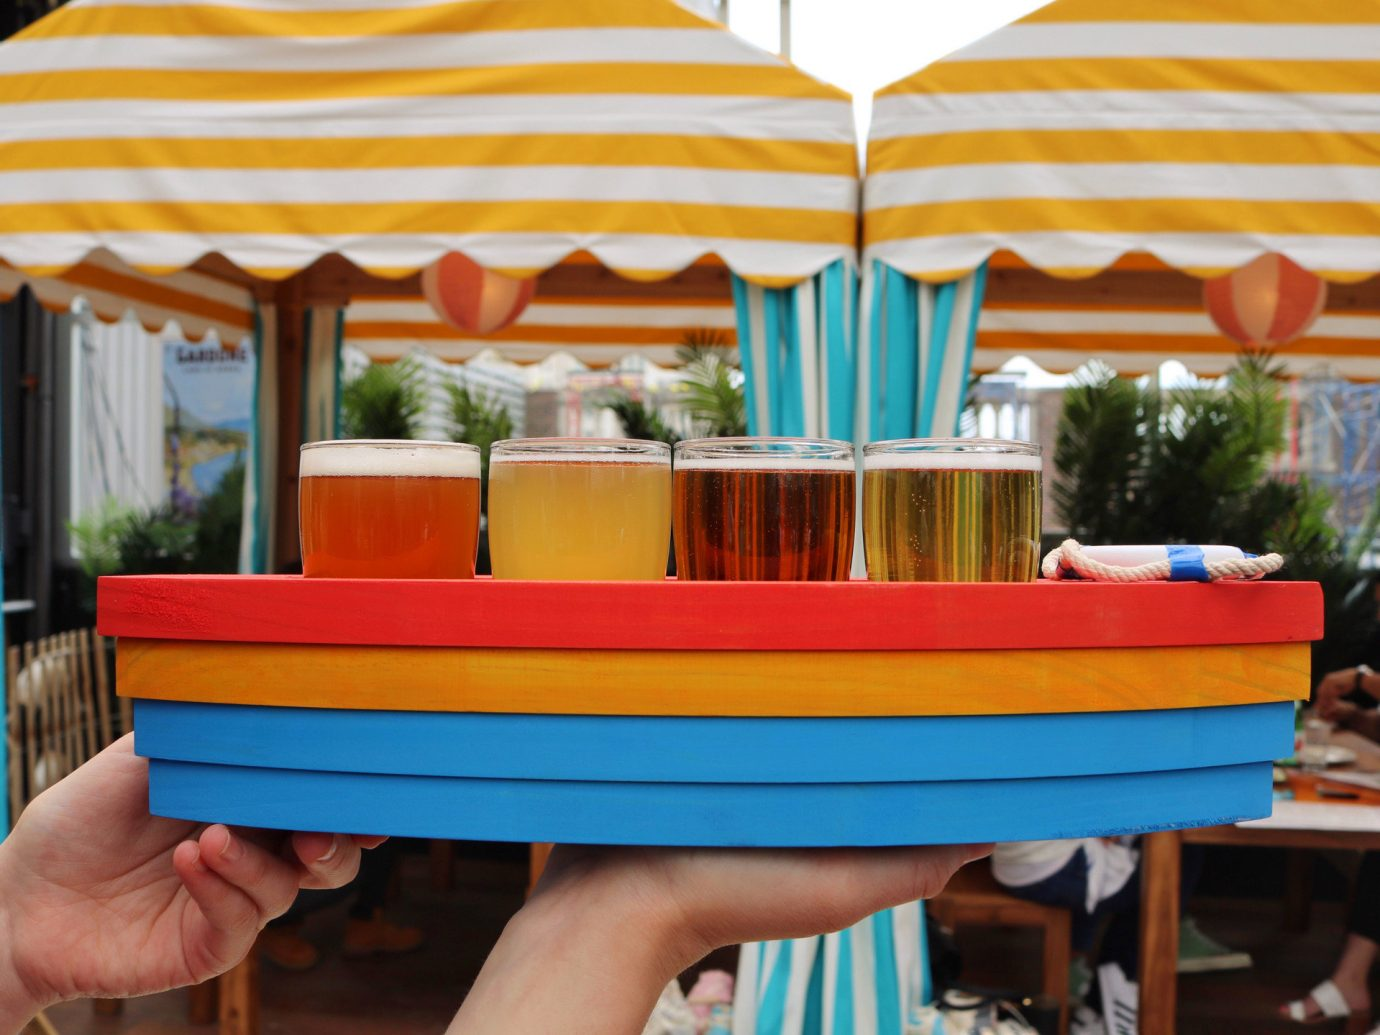 beer beer garden beer tasting Boat Drink flight Food + Drink Patio Terrace person leisure amusement park Play vacation colorful amusement ride Resort furniture blue